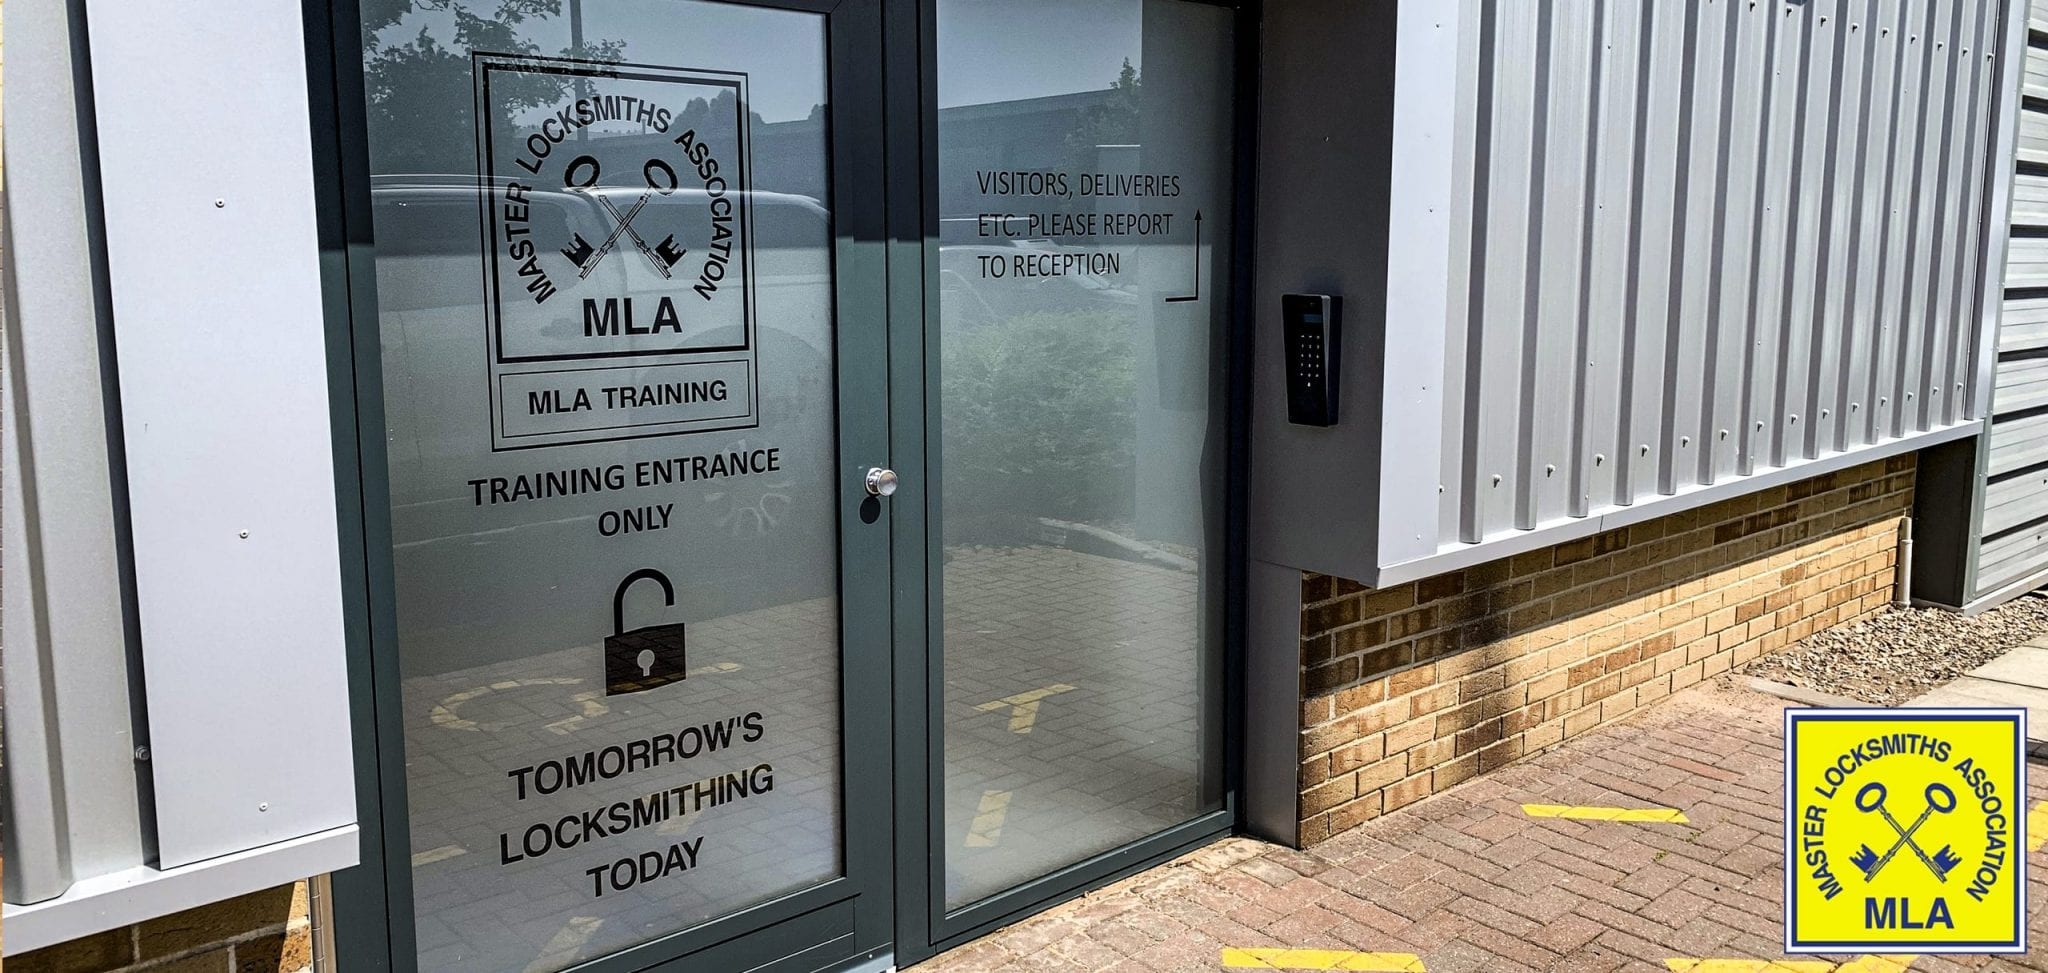 Warrior Fully Glazed High Security Swing Door & Screen with MLA logo in the bottom right corner.